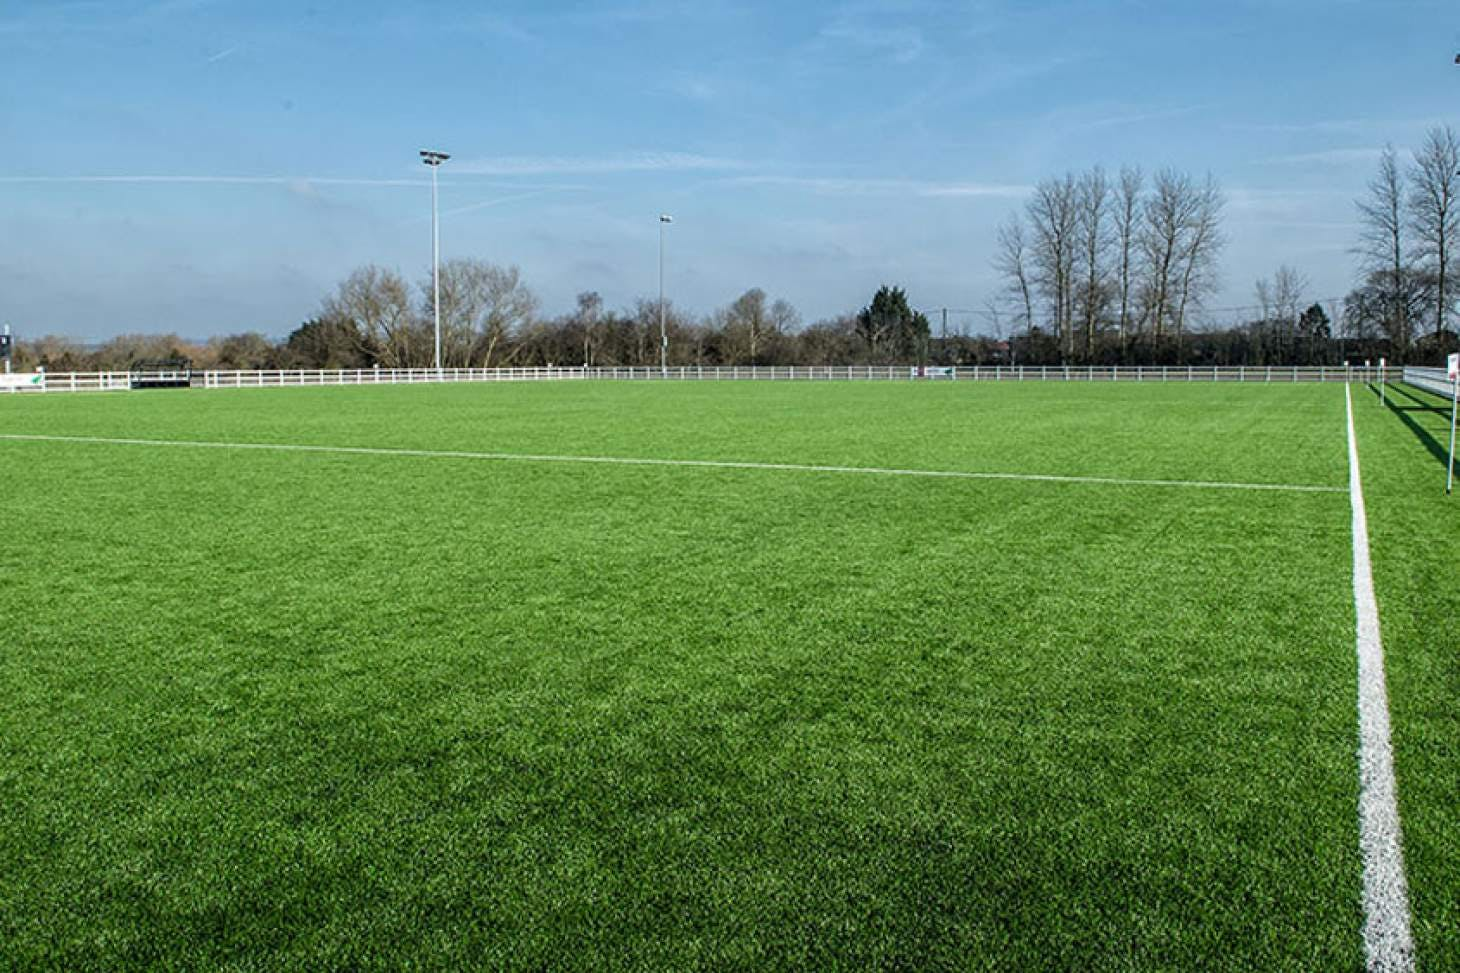 PlayFootball Cambridge Shelford 5 a side | 3G Astroturf football pitch